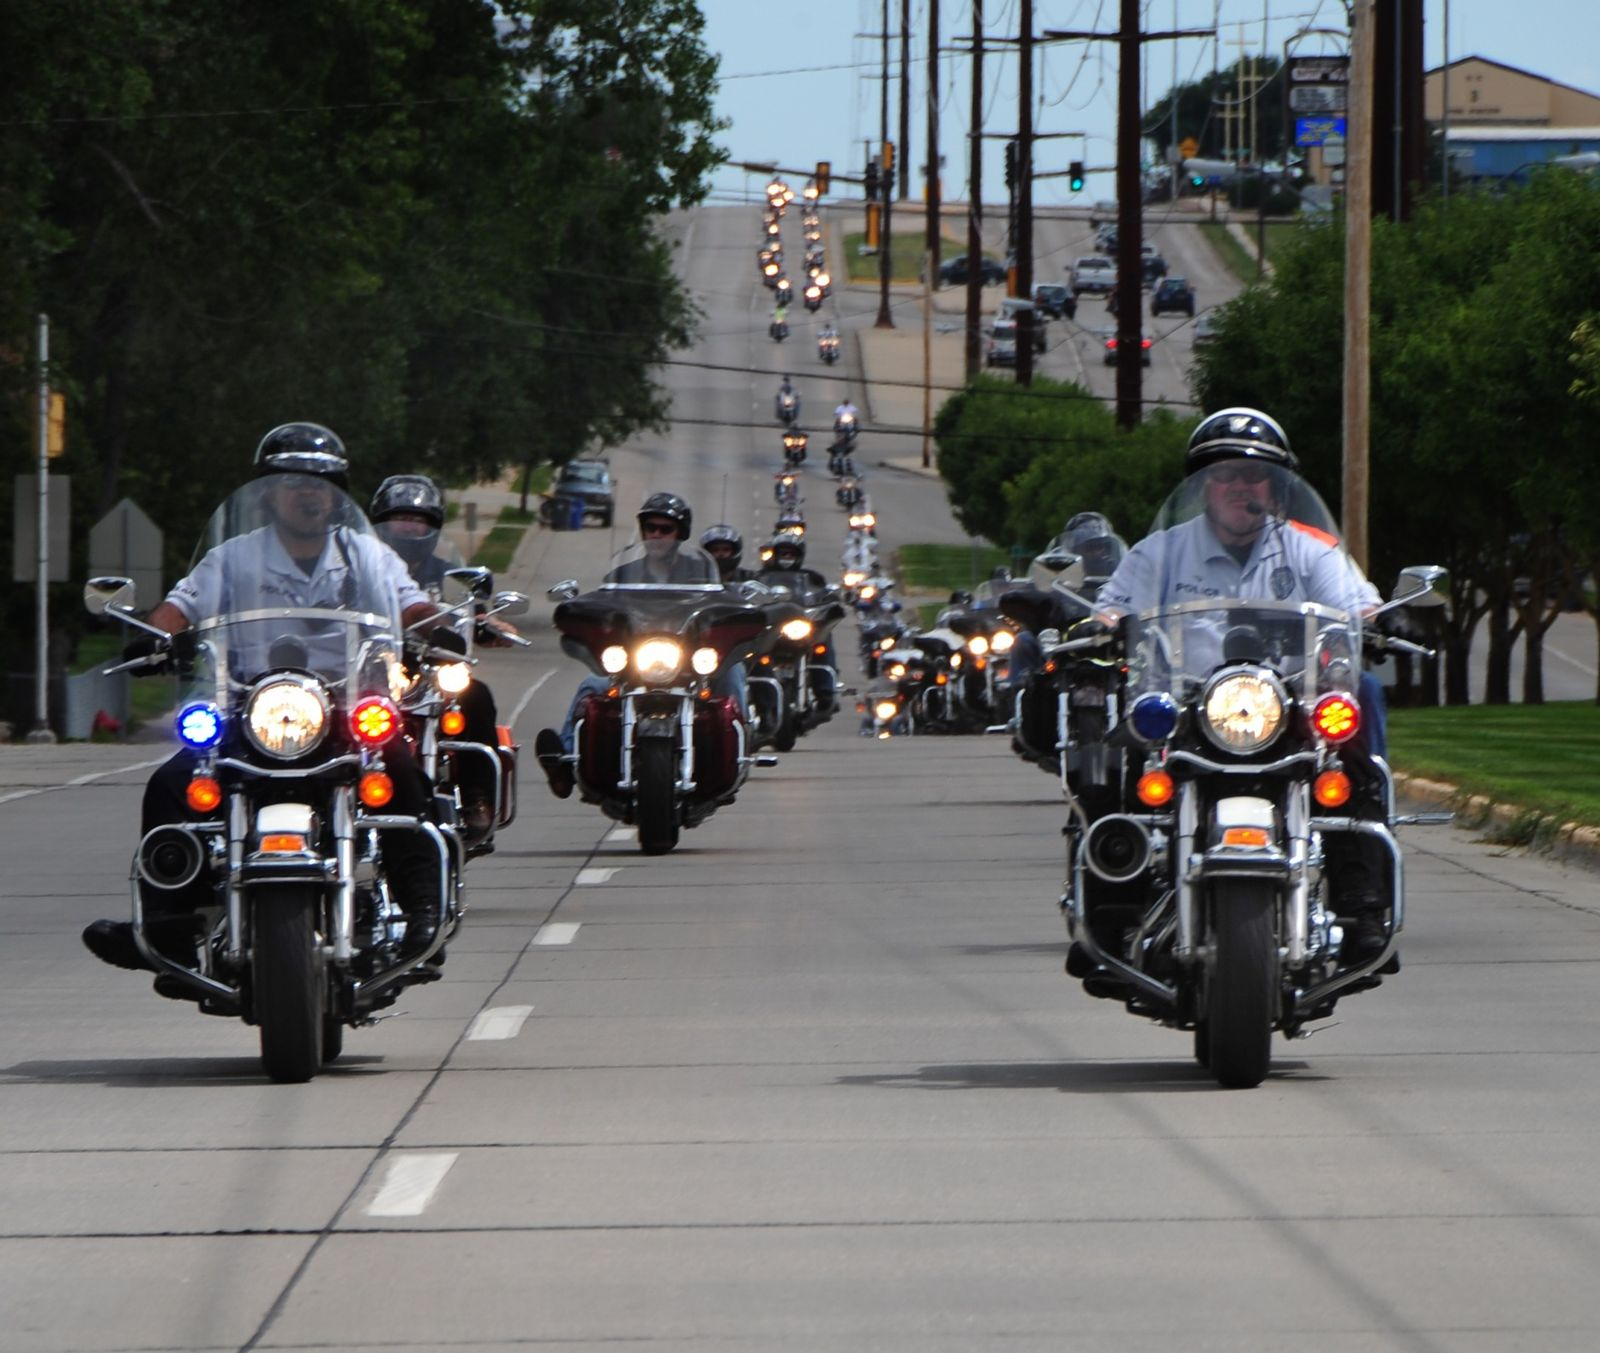 Large group of motorcycles in formation with Police motorcycles in front leading ride